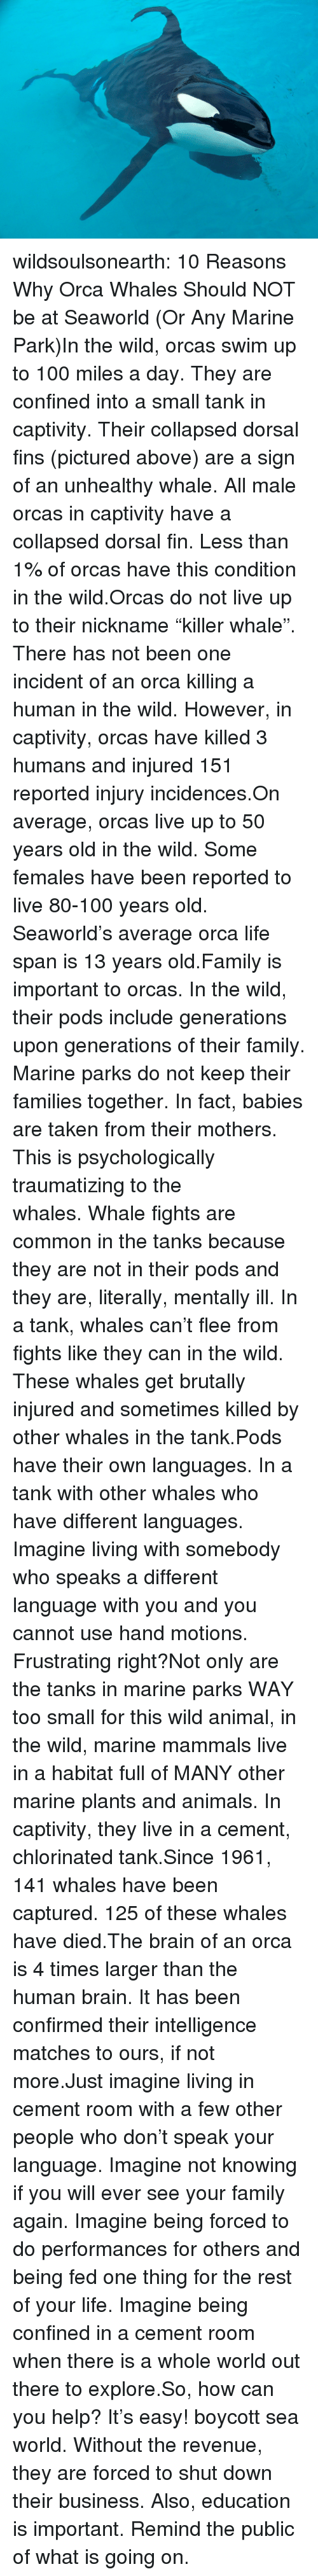 """Anaconda, Animals, and Family: wildsoulsonearth:  10 Reasons Why Orca Whales Should NOT be at Seaworld (Or Any Marine Park)In the wild, orcas swim up to 100 miles a day. They are confined into a small tank in captivity.Their collapsed dorsal fins (pictured above) are a sign of an unhealthy whale. All male orcas in captivity have a collapsed dorsal fin. Less than 1% of orcas have this condition in the wild.Orcas do not live up to their nickname""""killer whale"""". There has not been one incident of an orca killing a human in the wild. However, in captivity, orcas have killed 3 humans and injured 151 reported injury incidences.On average, orcas live up to 50 years old in the wild. Some females have been reported to live 80-100 years old. Seaworld's average orca life span is 13 years old.Family is important to orcas. In the wild, their pods include generations upon generations of their family. Marine parks do not keep their families together. In fact, babies are taken from their mothers. This is psychologically traumatizing to the whales.Whale fights are common in the tanks because they are not in their pods and they are, literally, mentally ill. In a tank, whales can't flee from fights like they can in the wild. These whales get brutally injured and sometimes killed by other whales in the tank.Pods have their own languages. In a tank with other whales who have different languages. Imagine living with somebody who speaks a different language with you and you cannot use hand motions. Frustrating right?Not only are the tanks in marine parks WAY too small for this wild animal, in the wild, marine mammals live in a habitat full of MANY other marine plants and animals. In captivity, they live in a cement, chlorinated tank.Since 1961, 141 whales have been captured. 125 of these whales have died.The brain of an orca is 4 times larger than the human brain. It has been confirmed their intelligence matches to ours, if not more.Just imagine living in cement room with a few other peopl"""